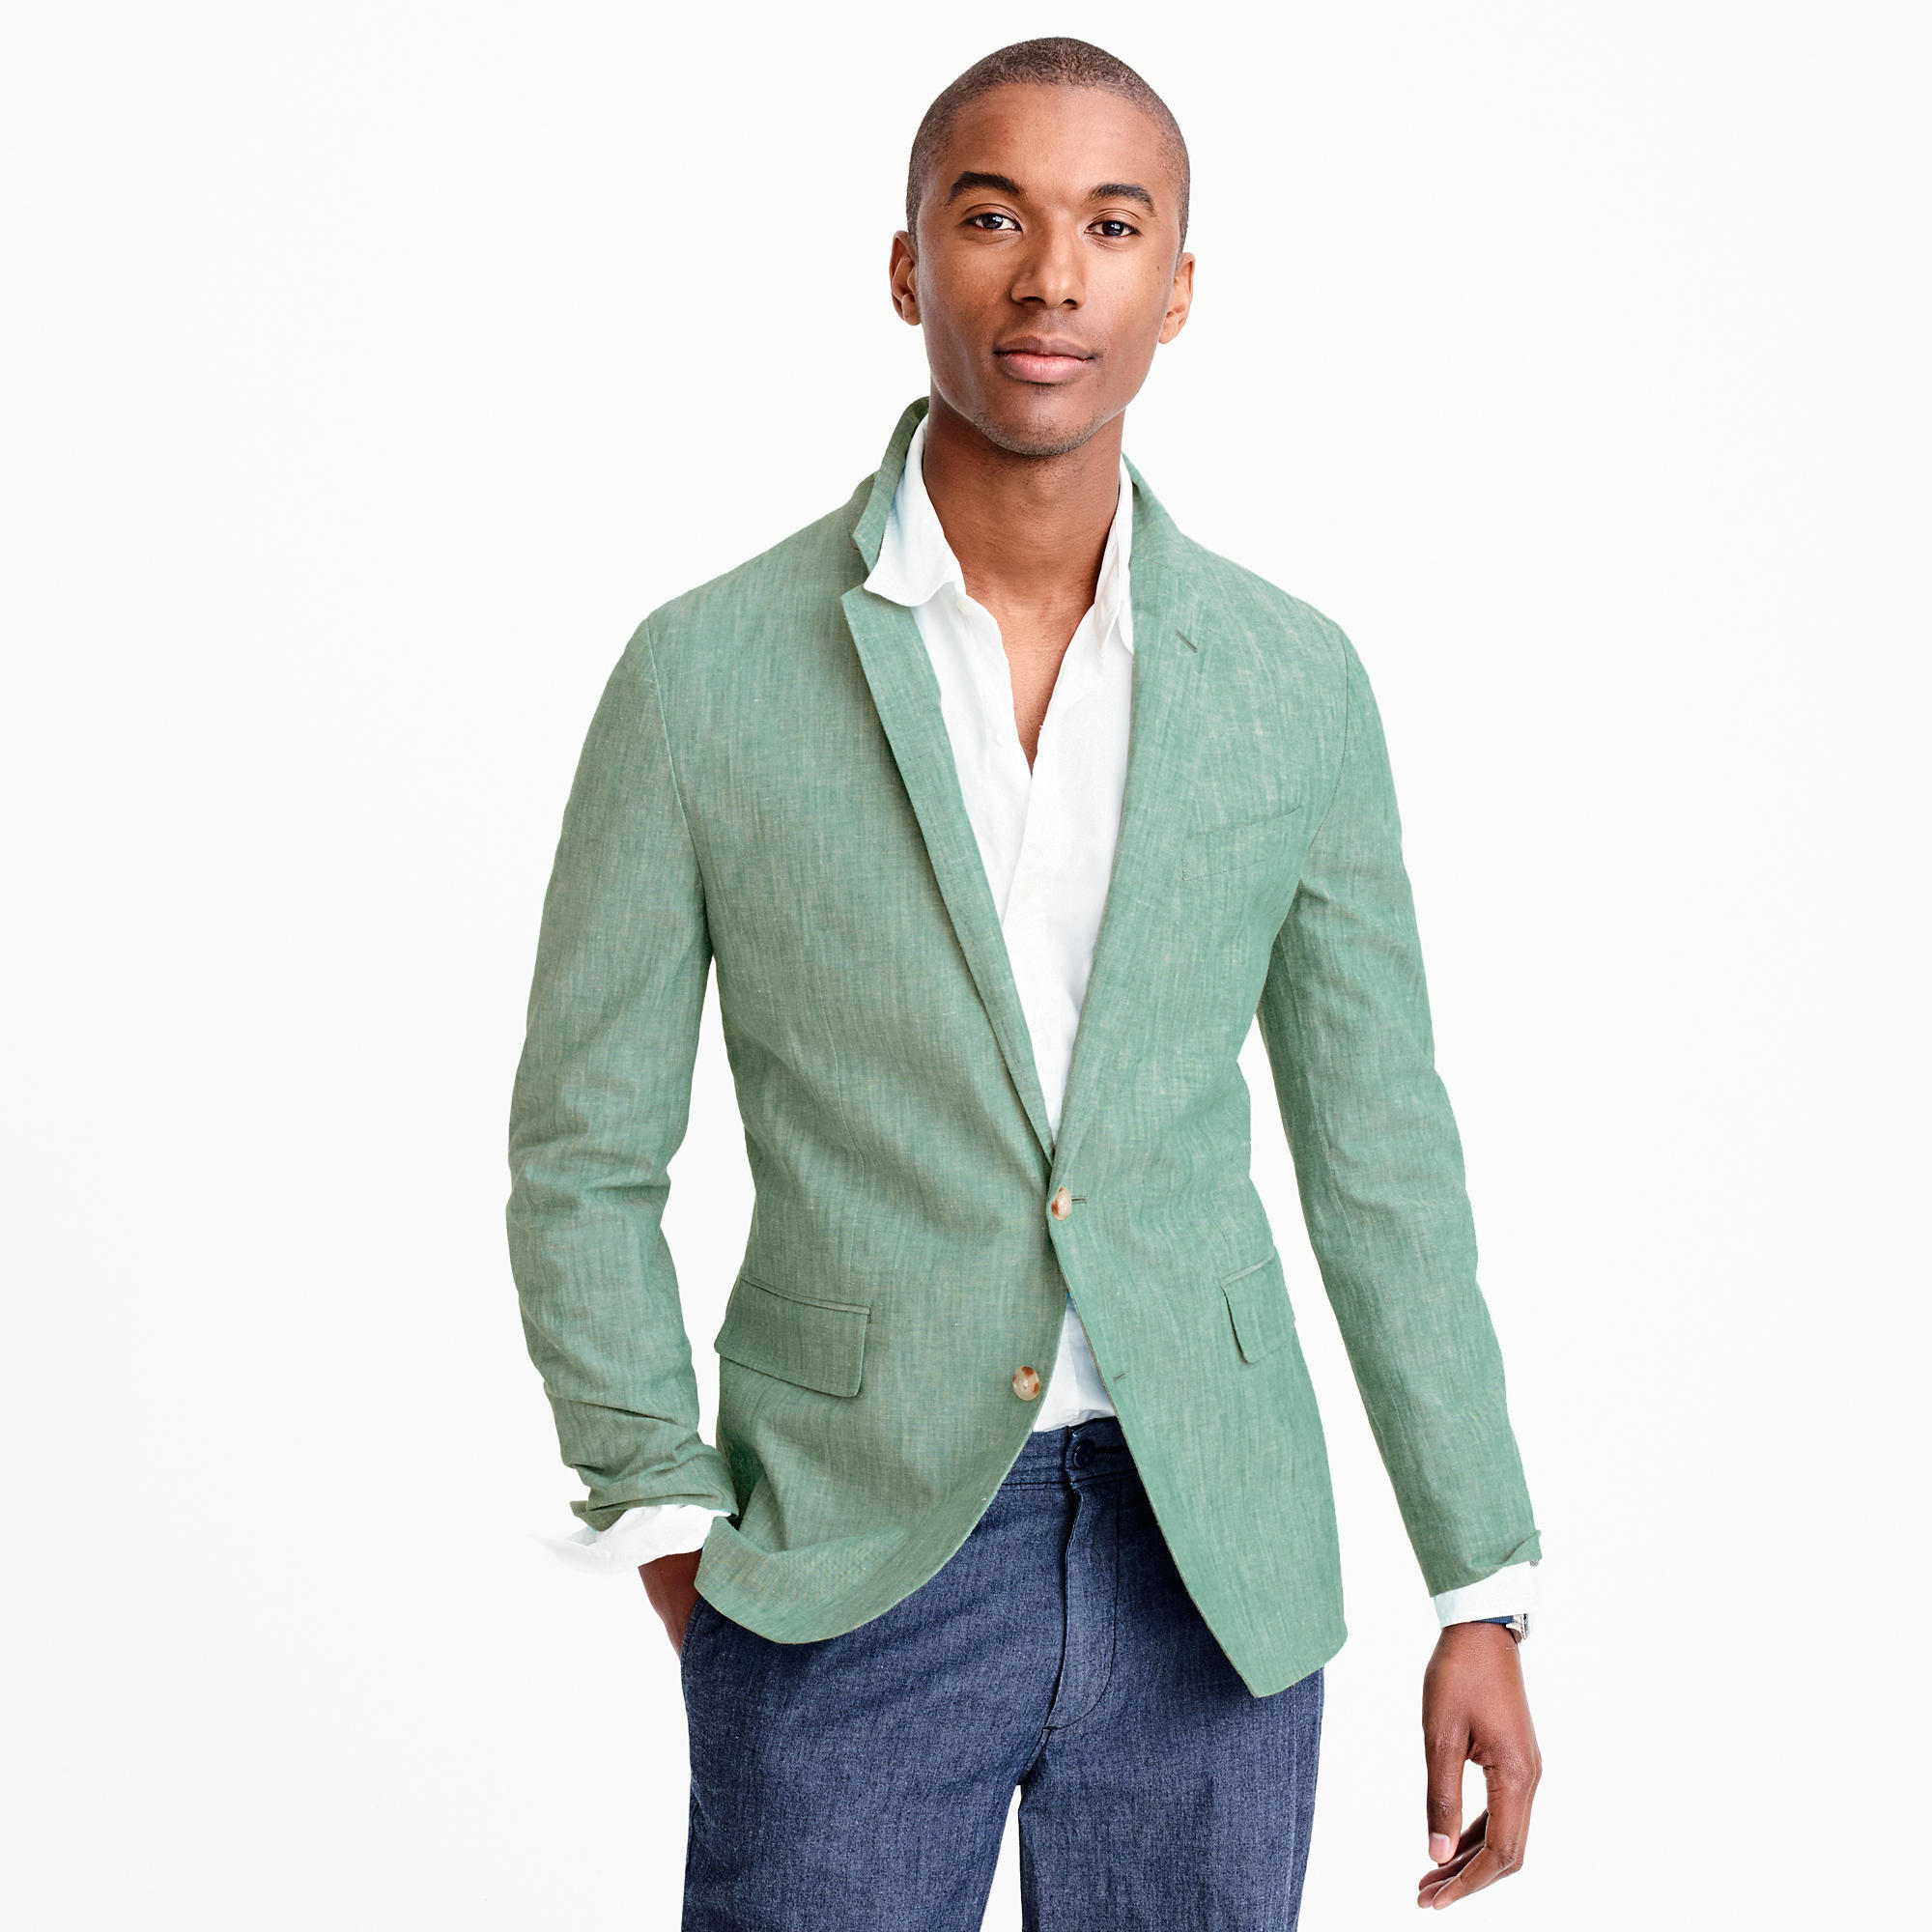 How To Wear Navy Dress Pants With a Green Blazer | Men's Fashion